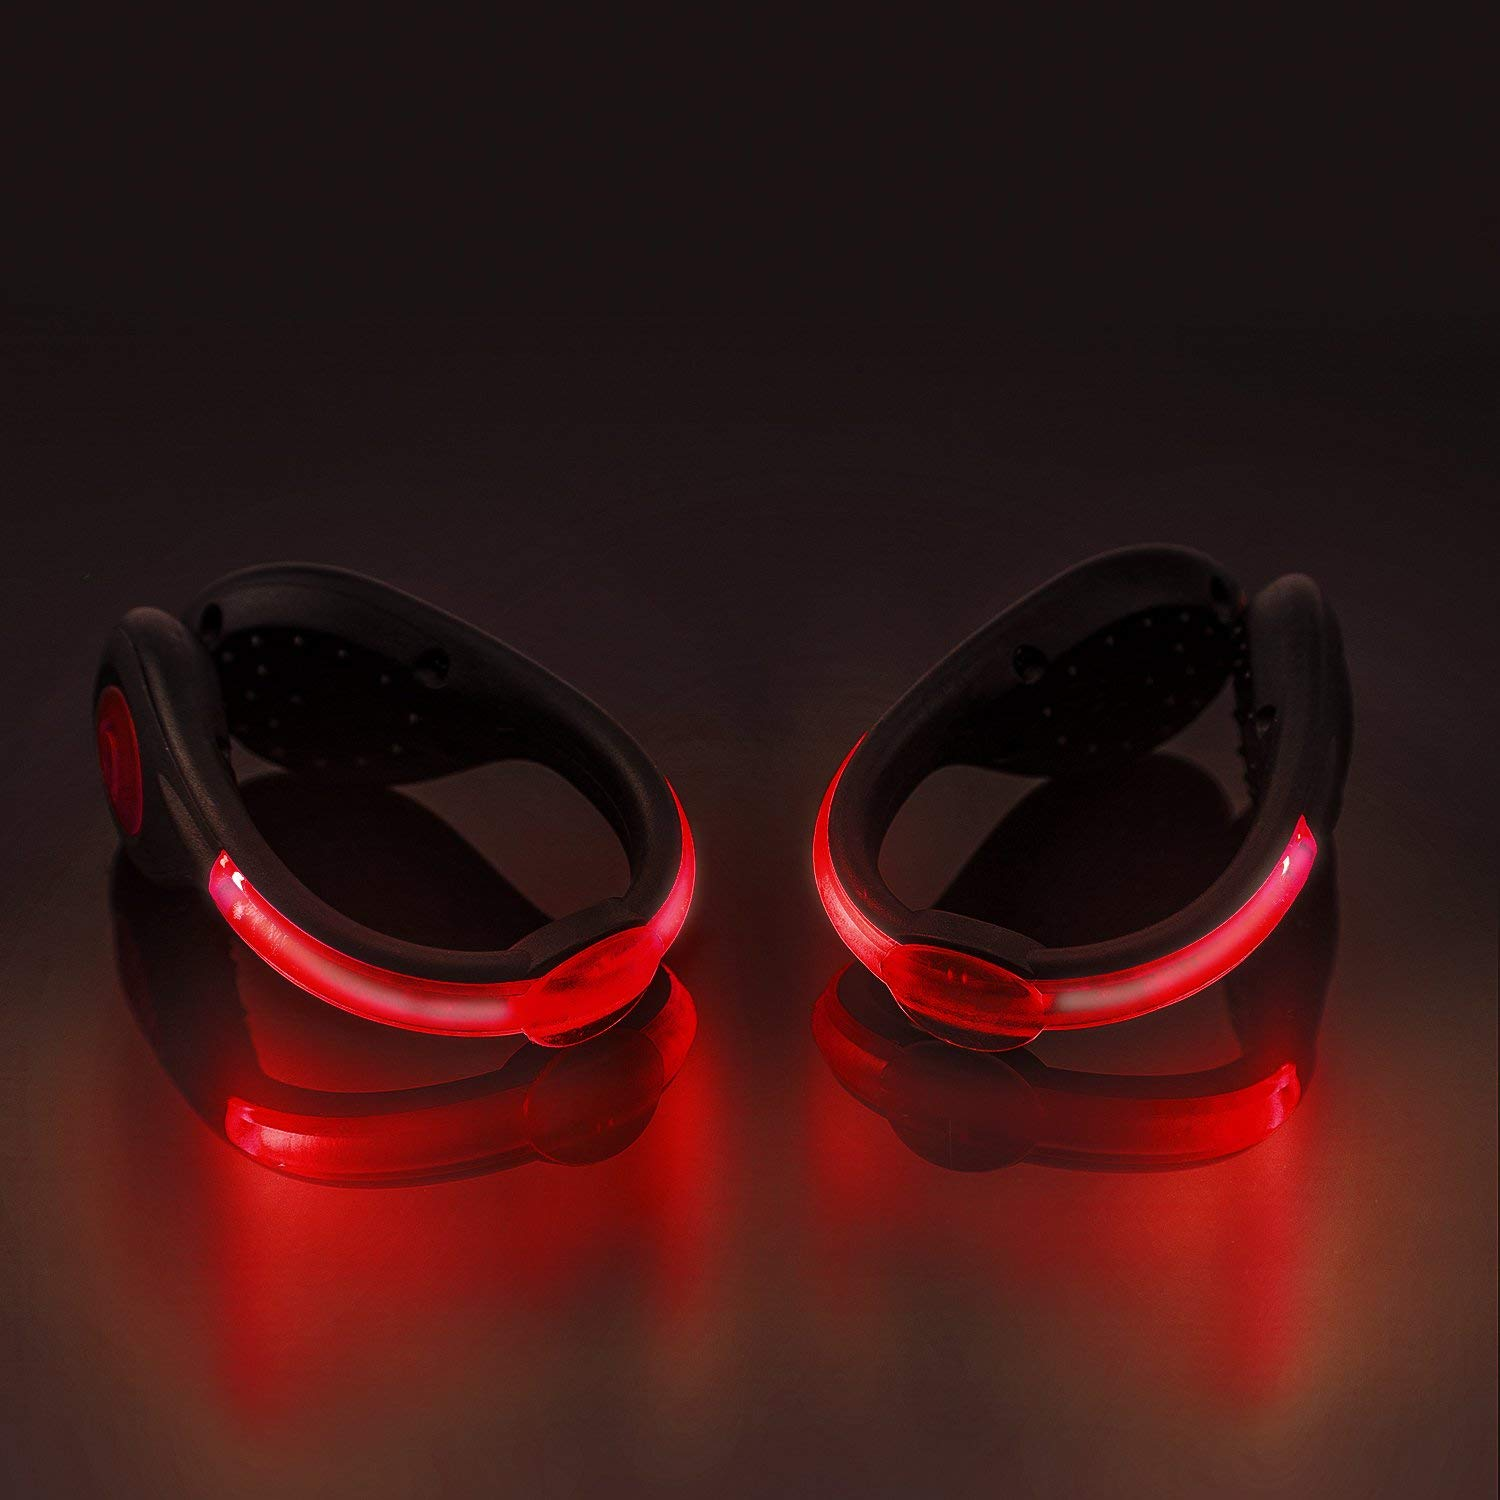 21a4b3d885b18 Get Quotations · SLDHR LED Shoes Clip Lights USB charging for Night Running  Gear, Color Changing RGB Strobe